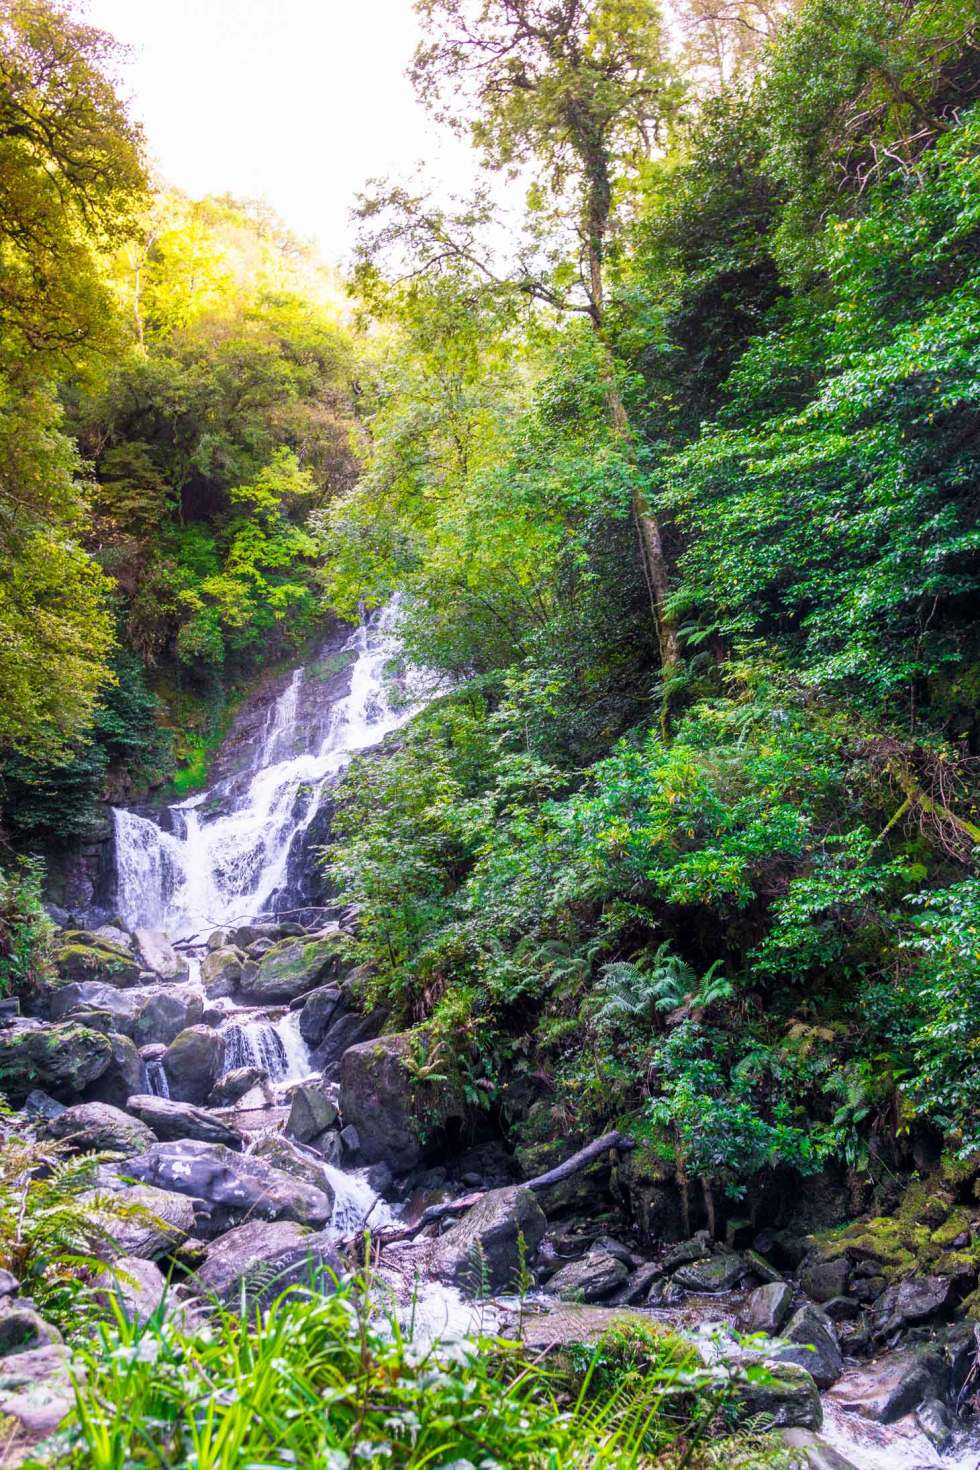 Torc waterfall in Ireland. The small Killarney National Park walk is worth the visit to the falls.